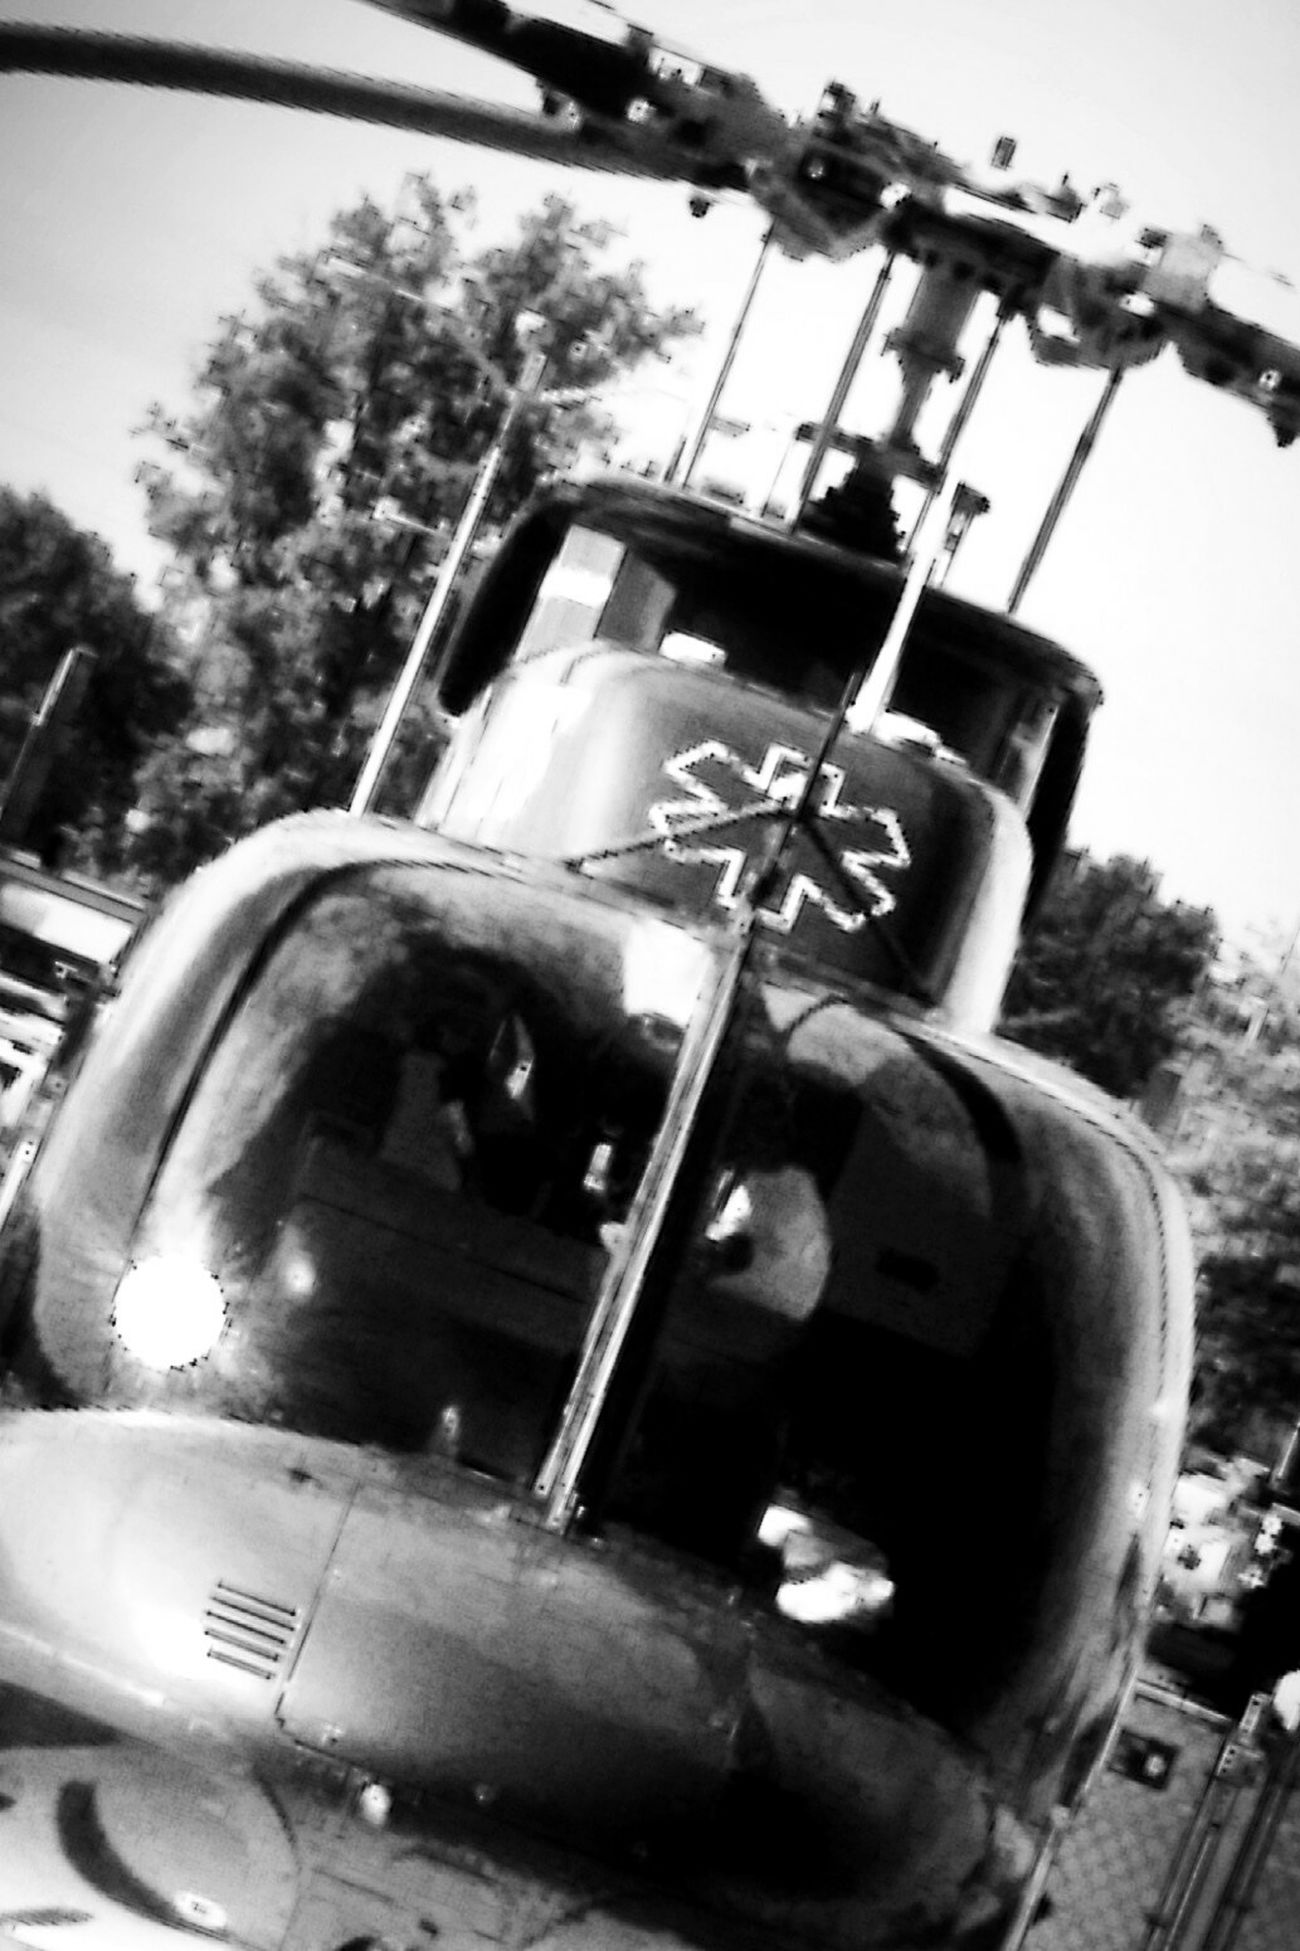 Lifeflight Helicopter Black And White